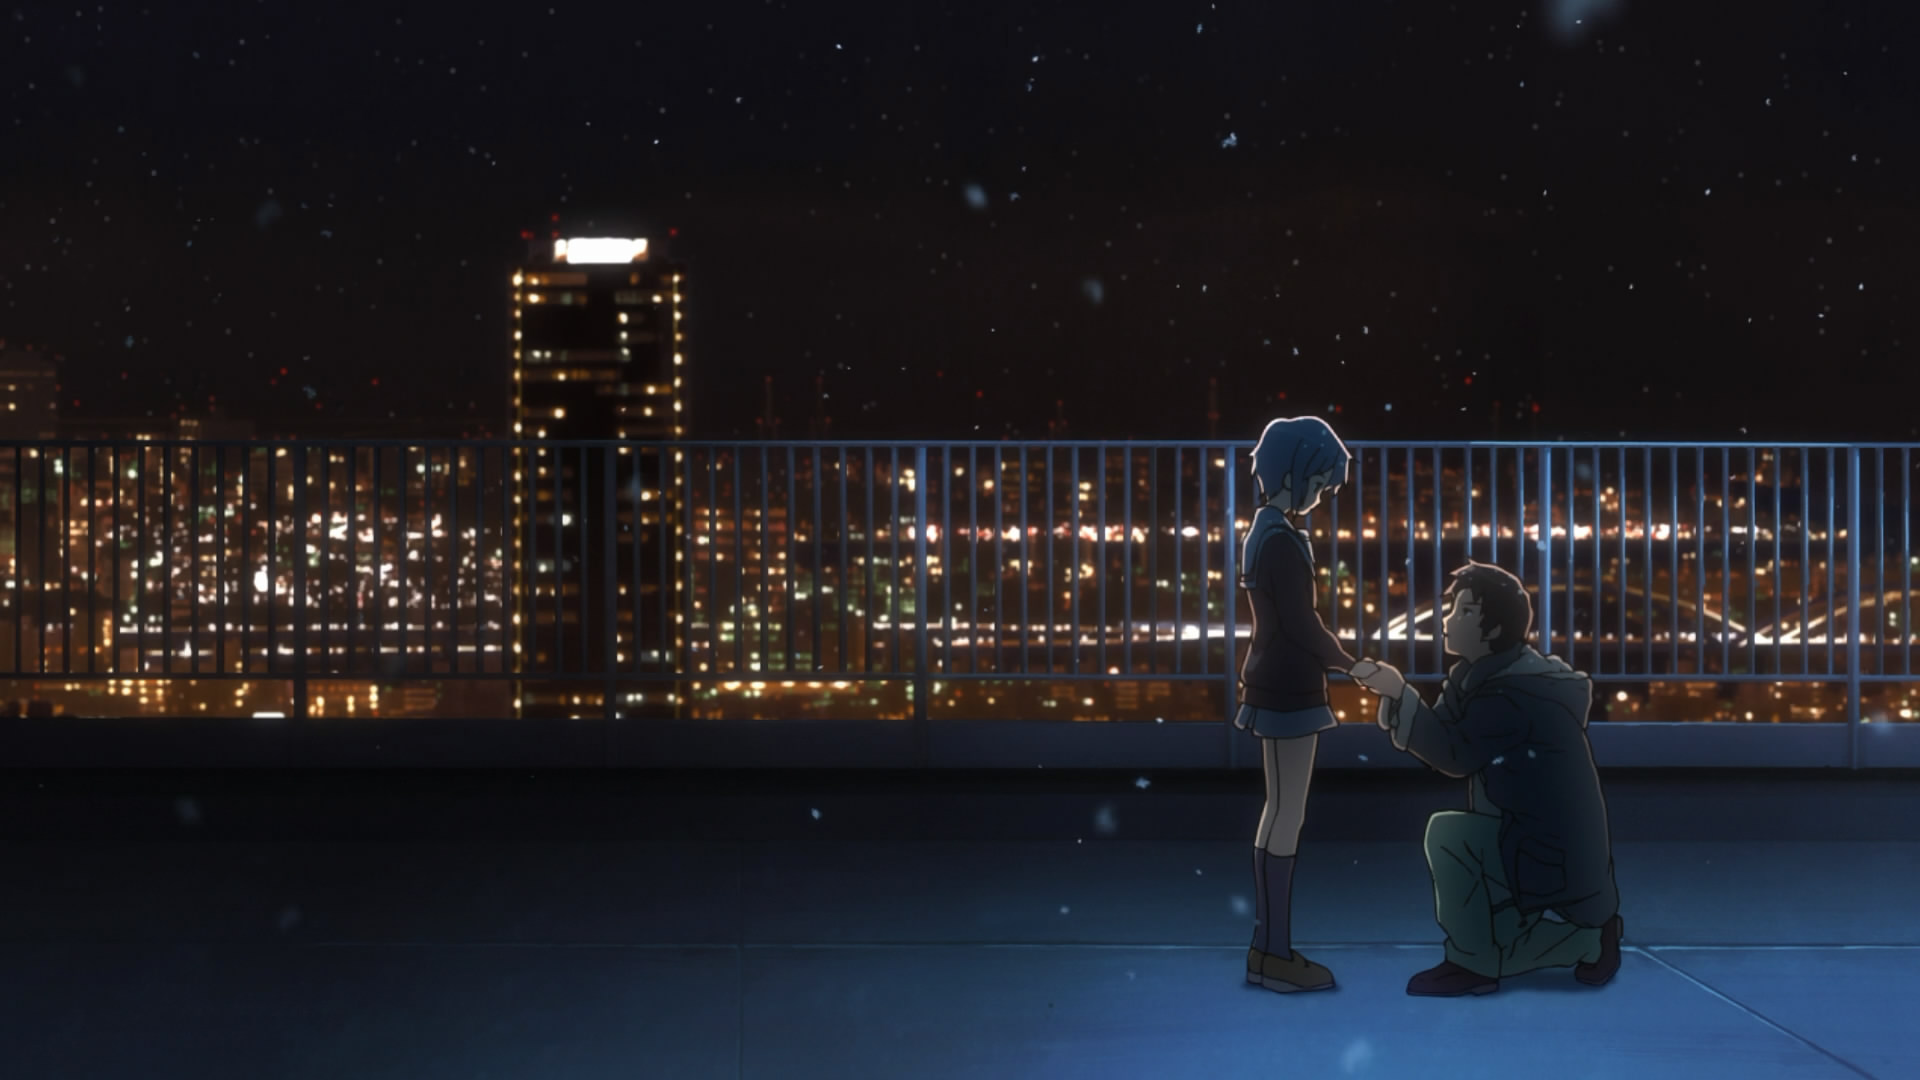 Moments In Anime 2010 When God Is Away Kyon Won T Pray